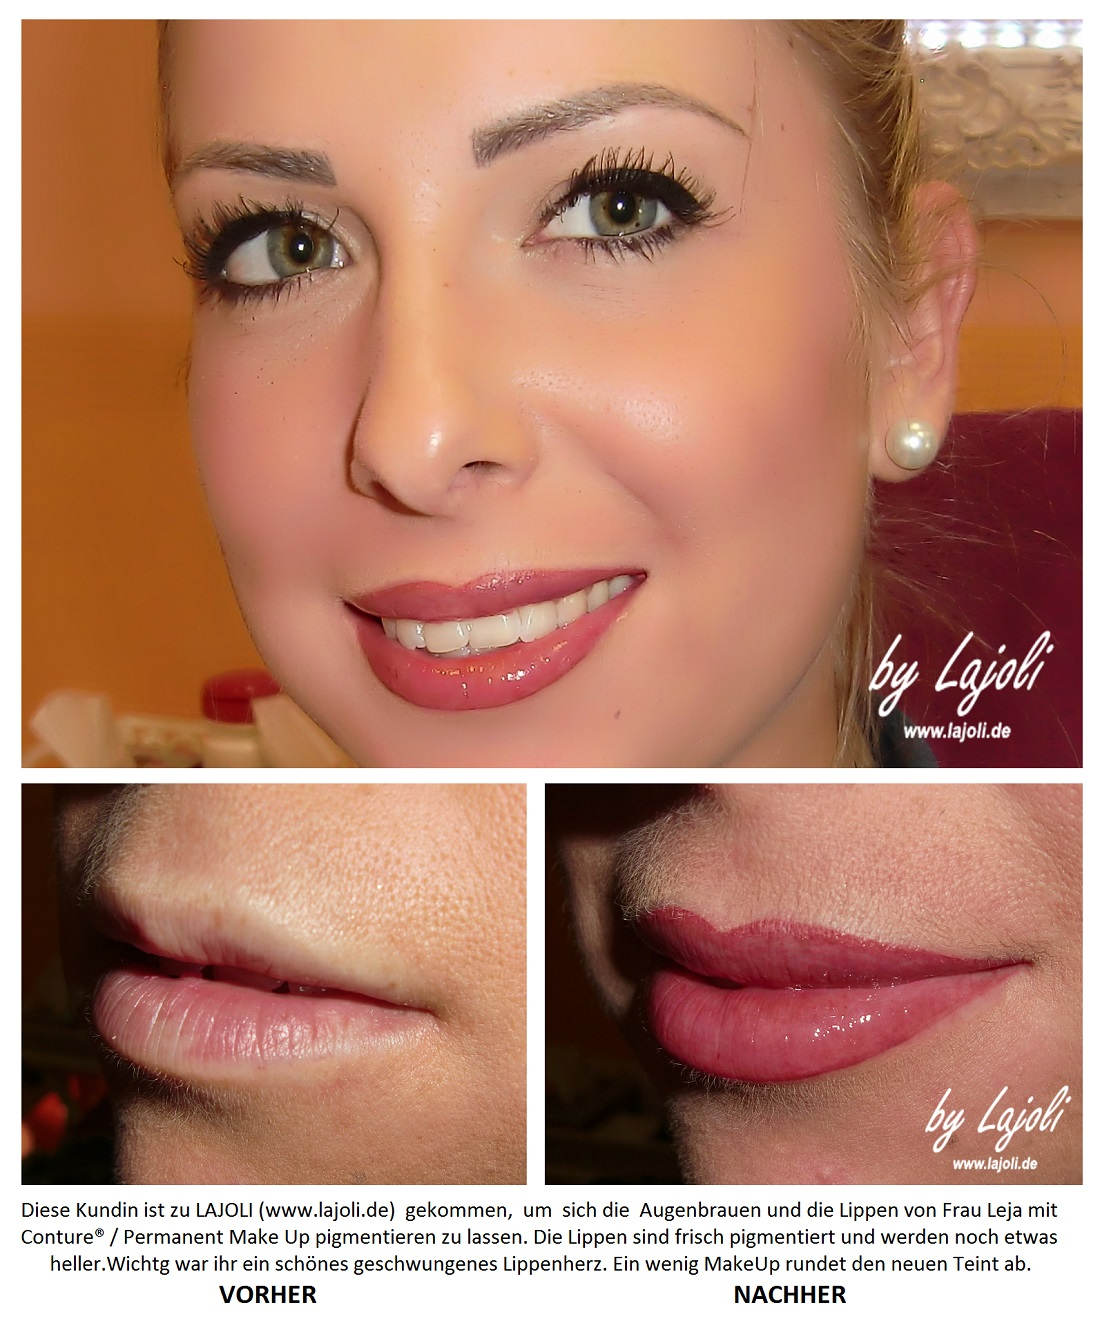 LAJOLI TOP-Elite-Studio für Permanent Make-Up, Fadenlifting und Faltenunterspritzung in Hamburg - Lippen - www.lajoli.de